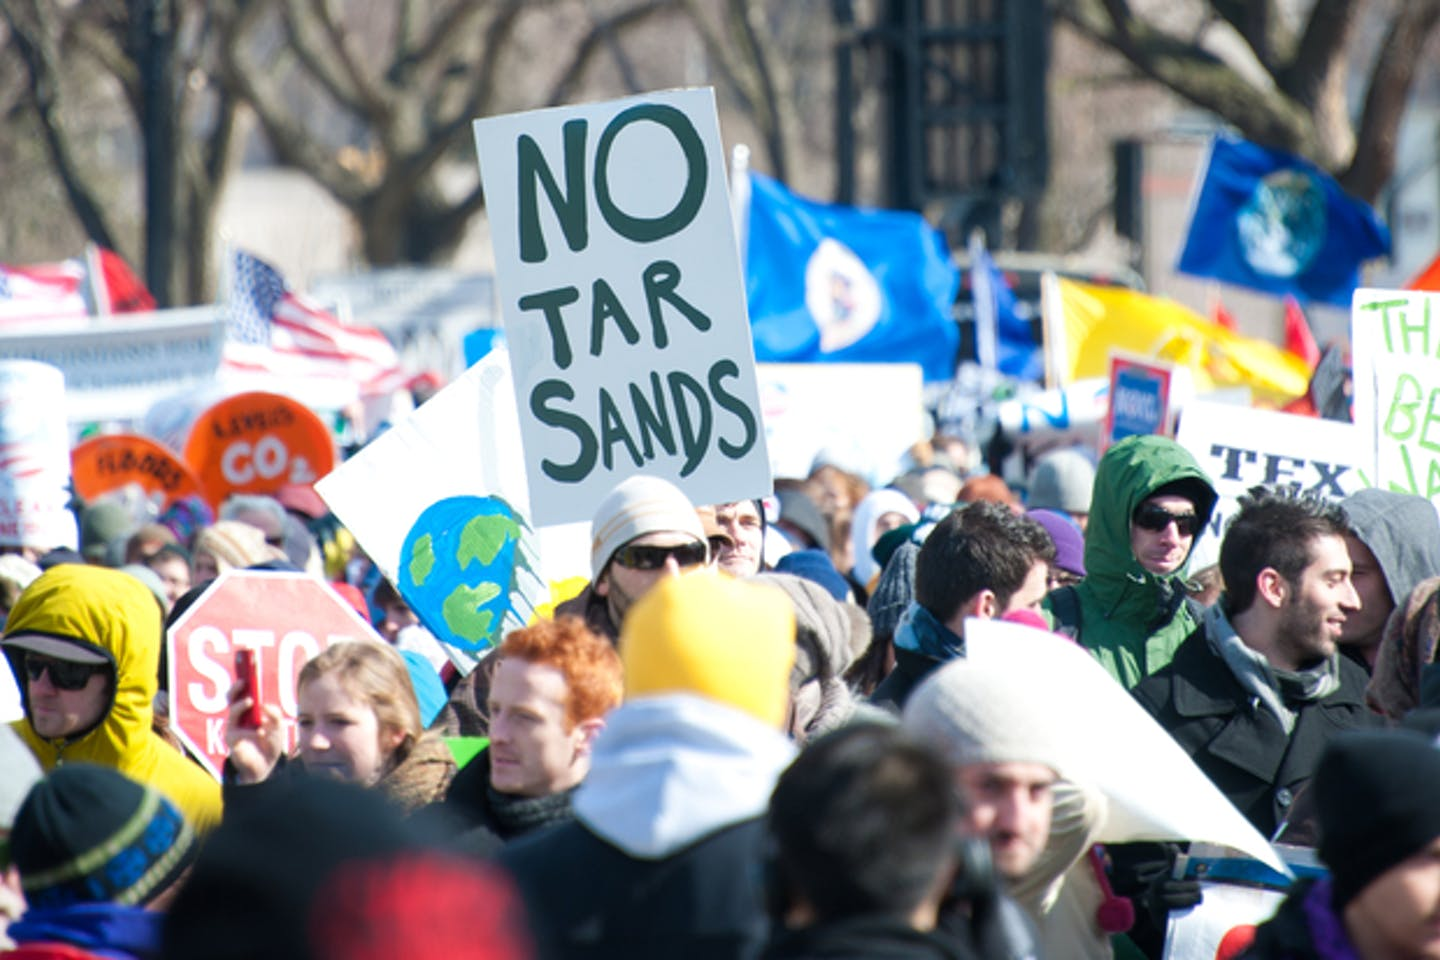 no tar sands protest washington